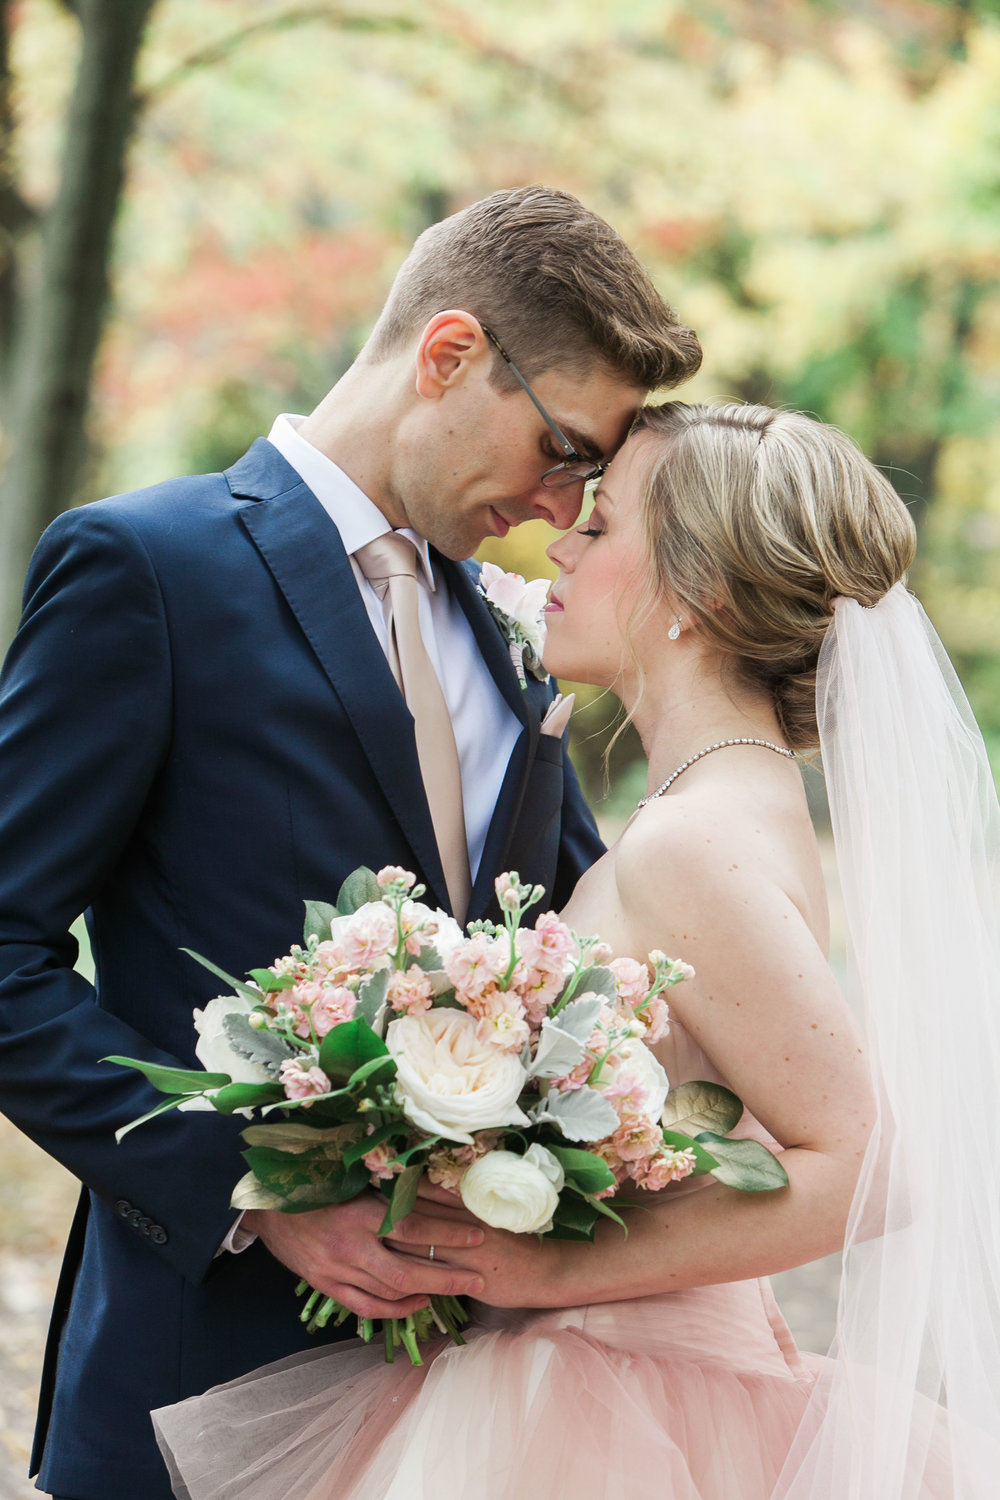 Bride in blush and groom in navy